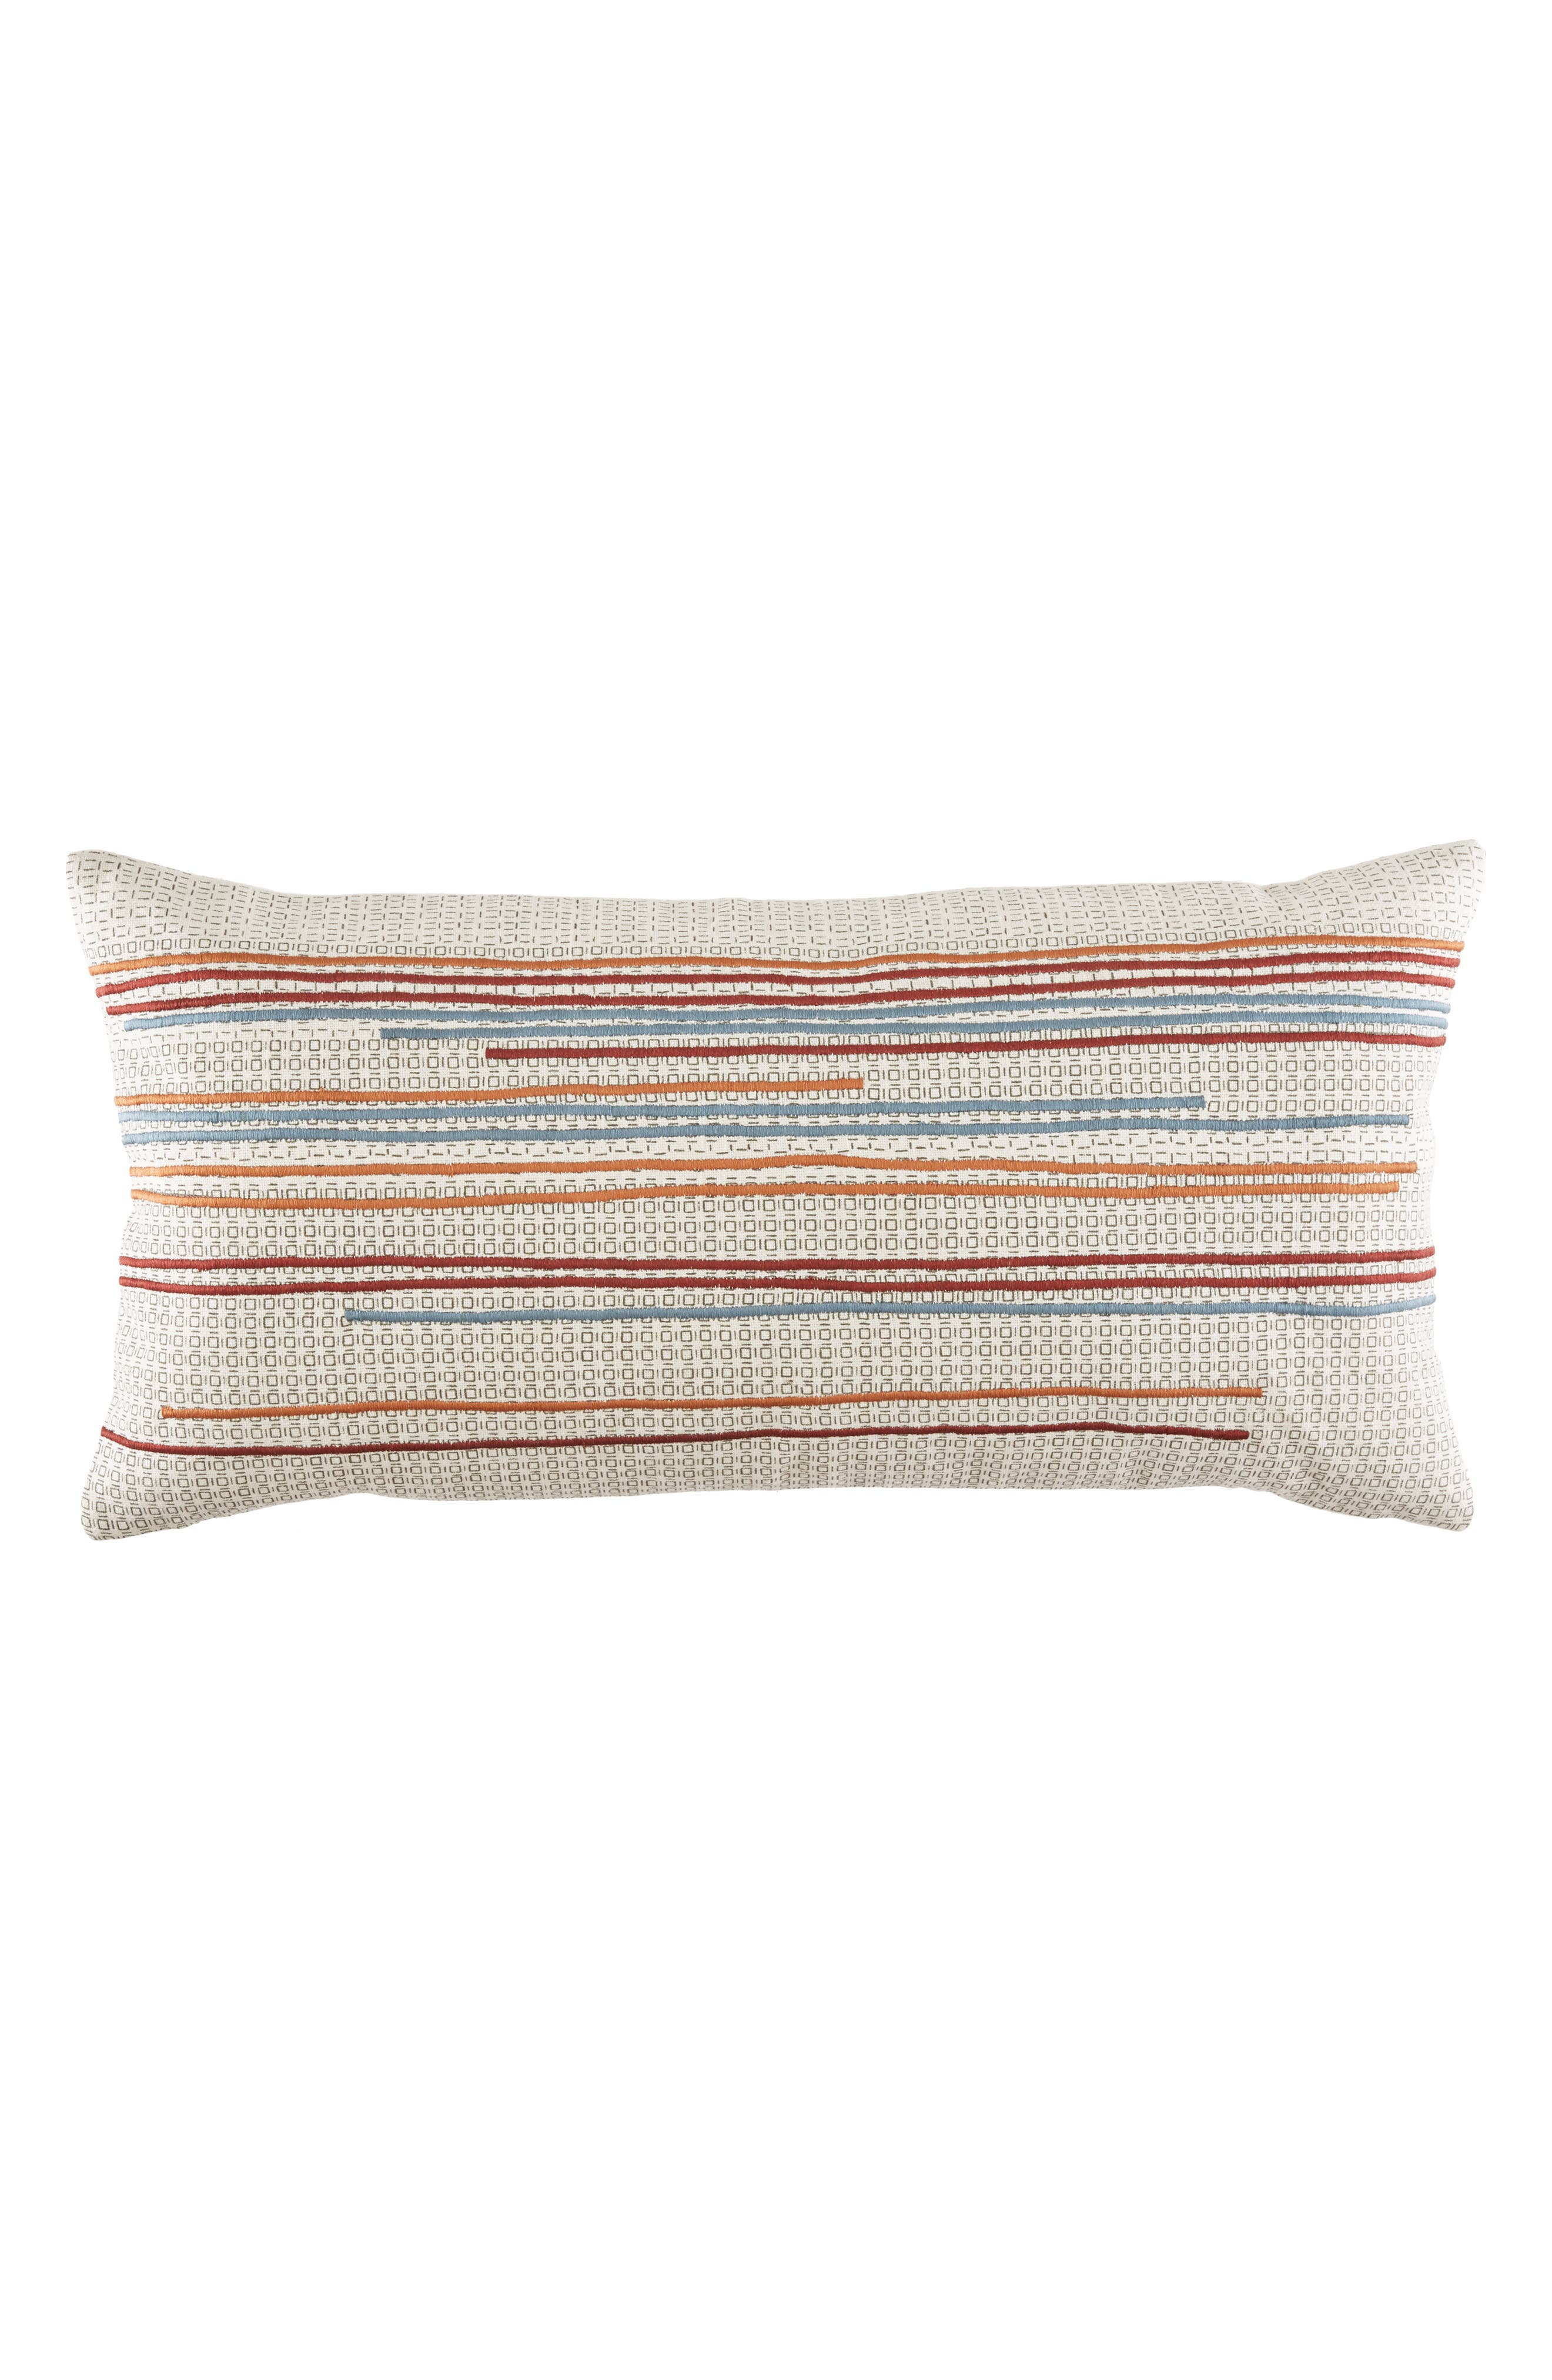 Main Image - DwellStudio Indira Accent Pillow